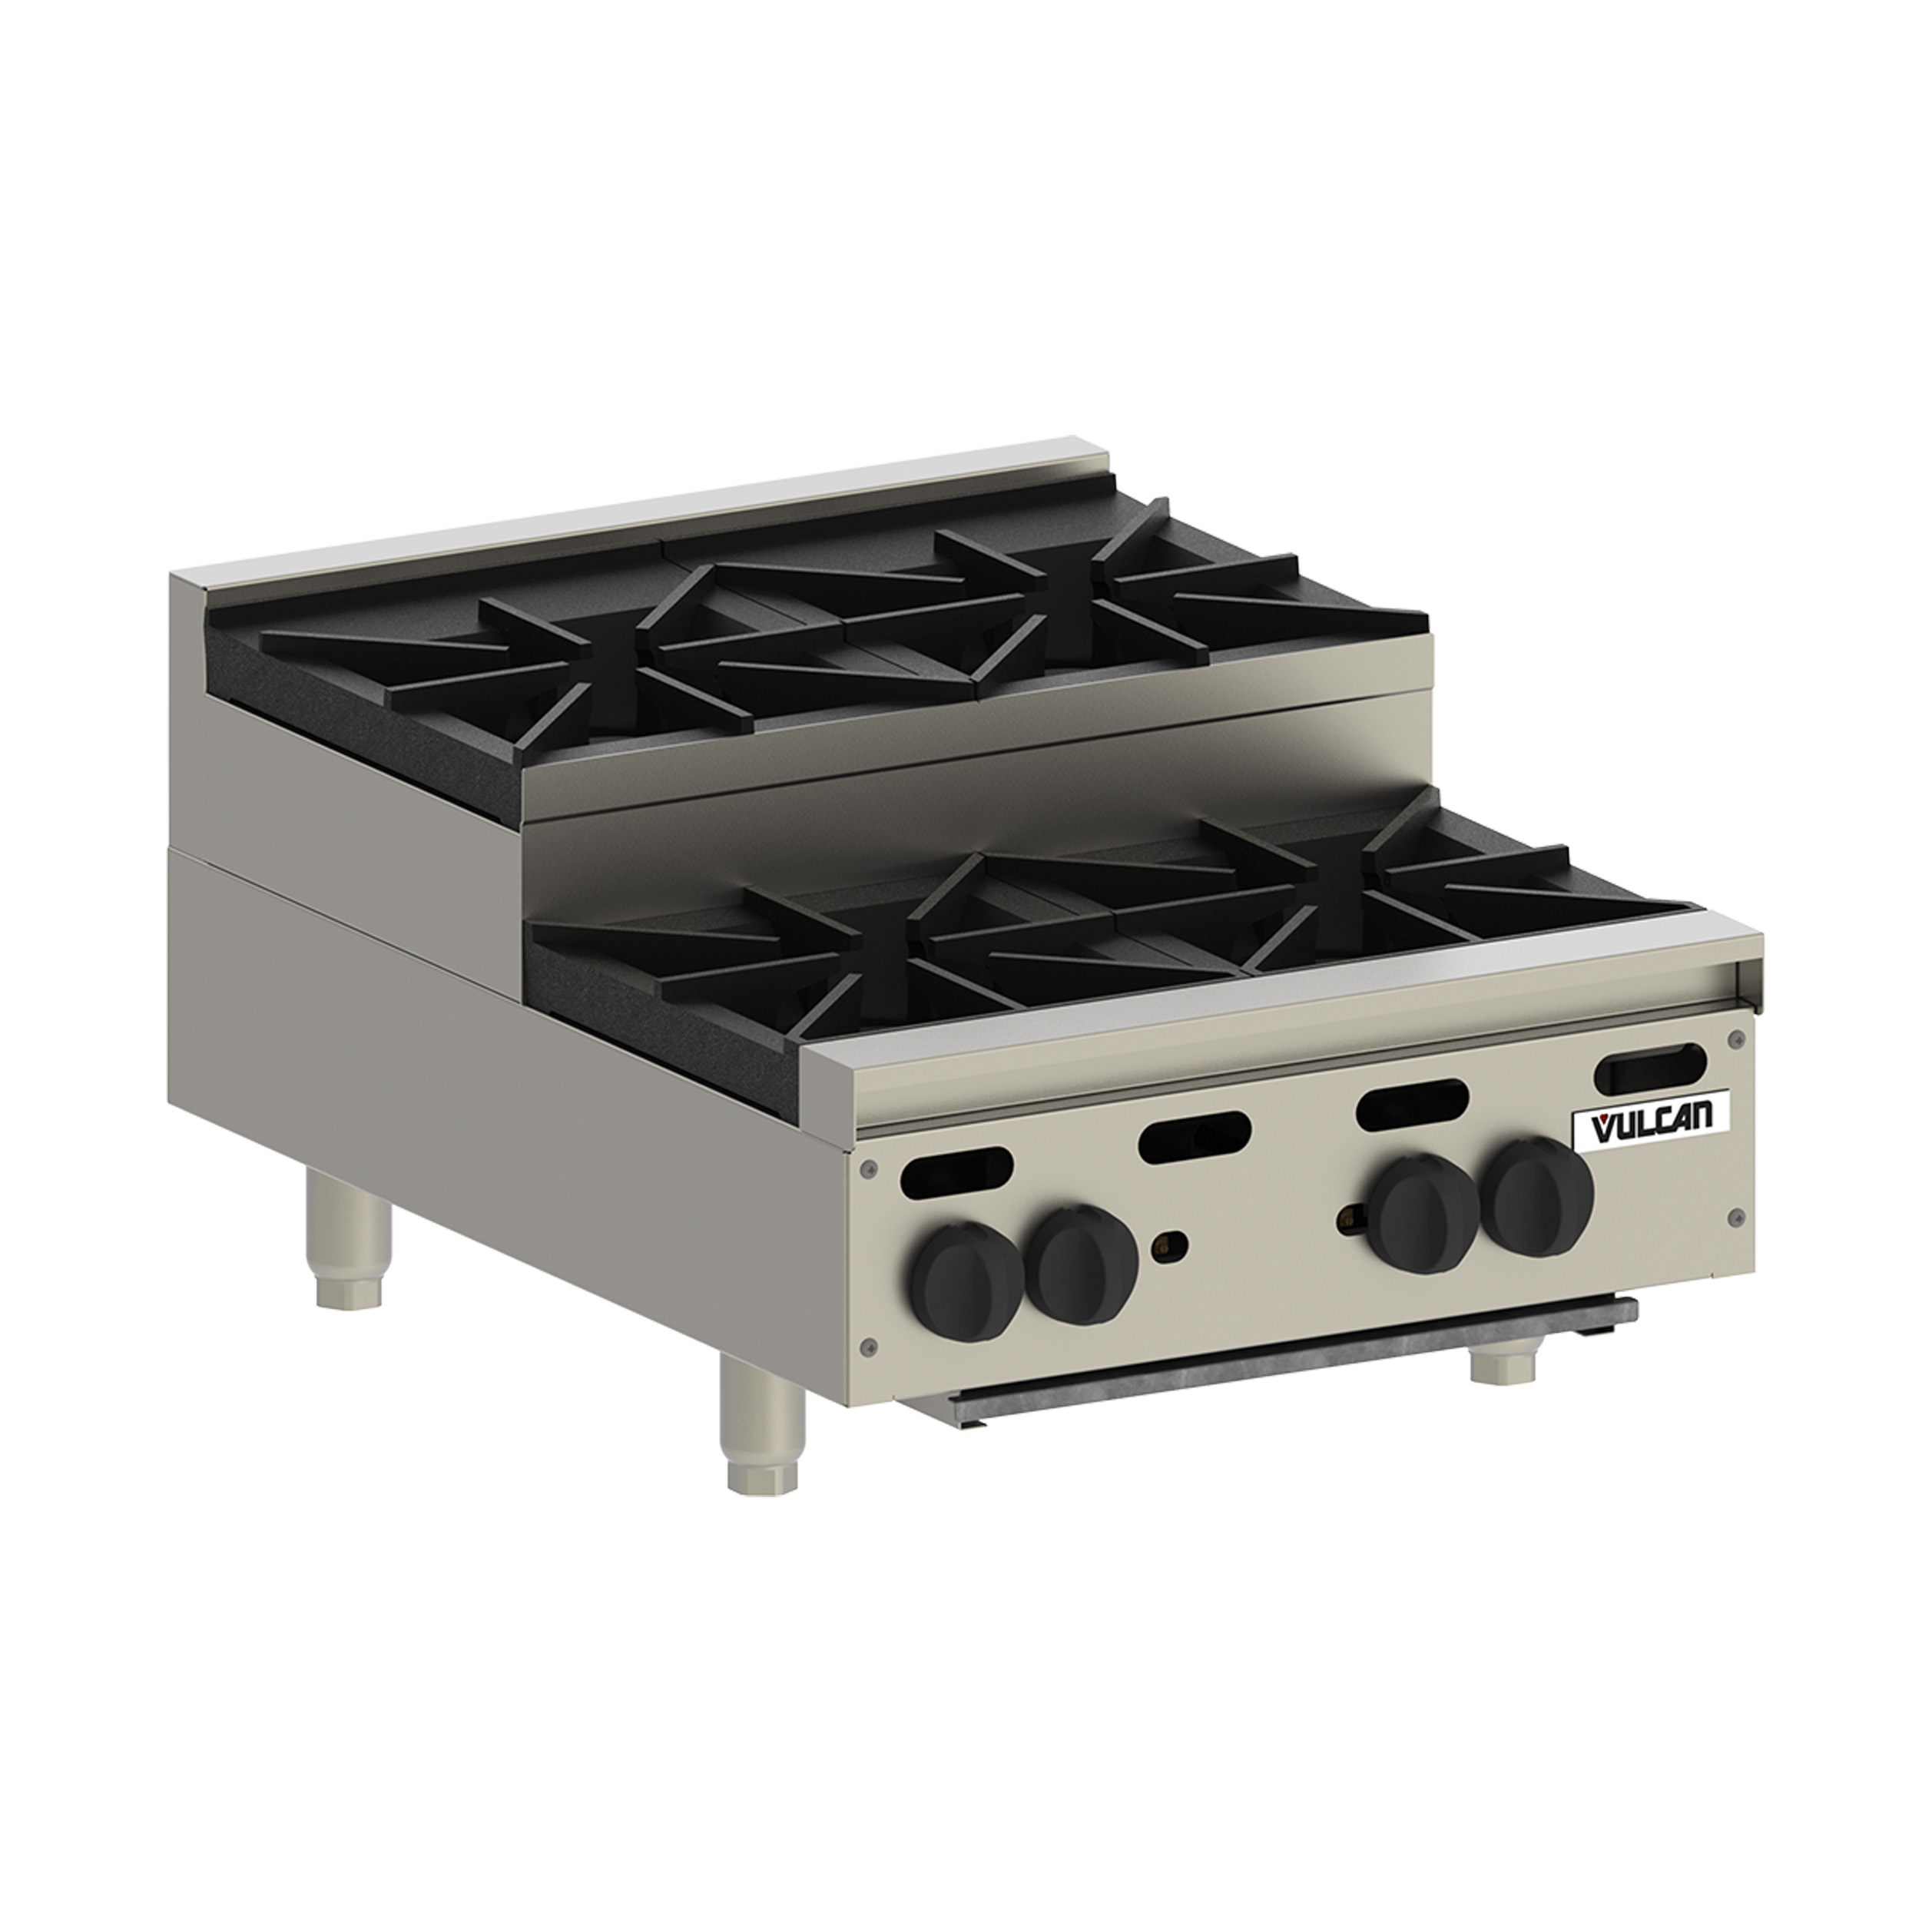 Vulcan VHP424U hotplate, countertop, gas